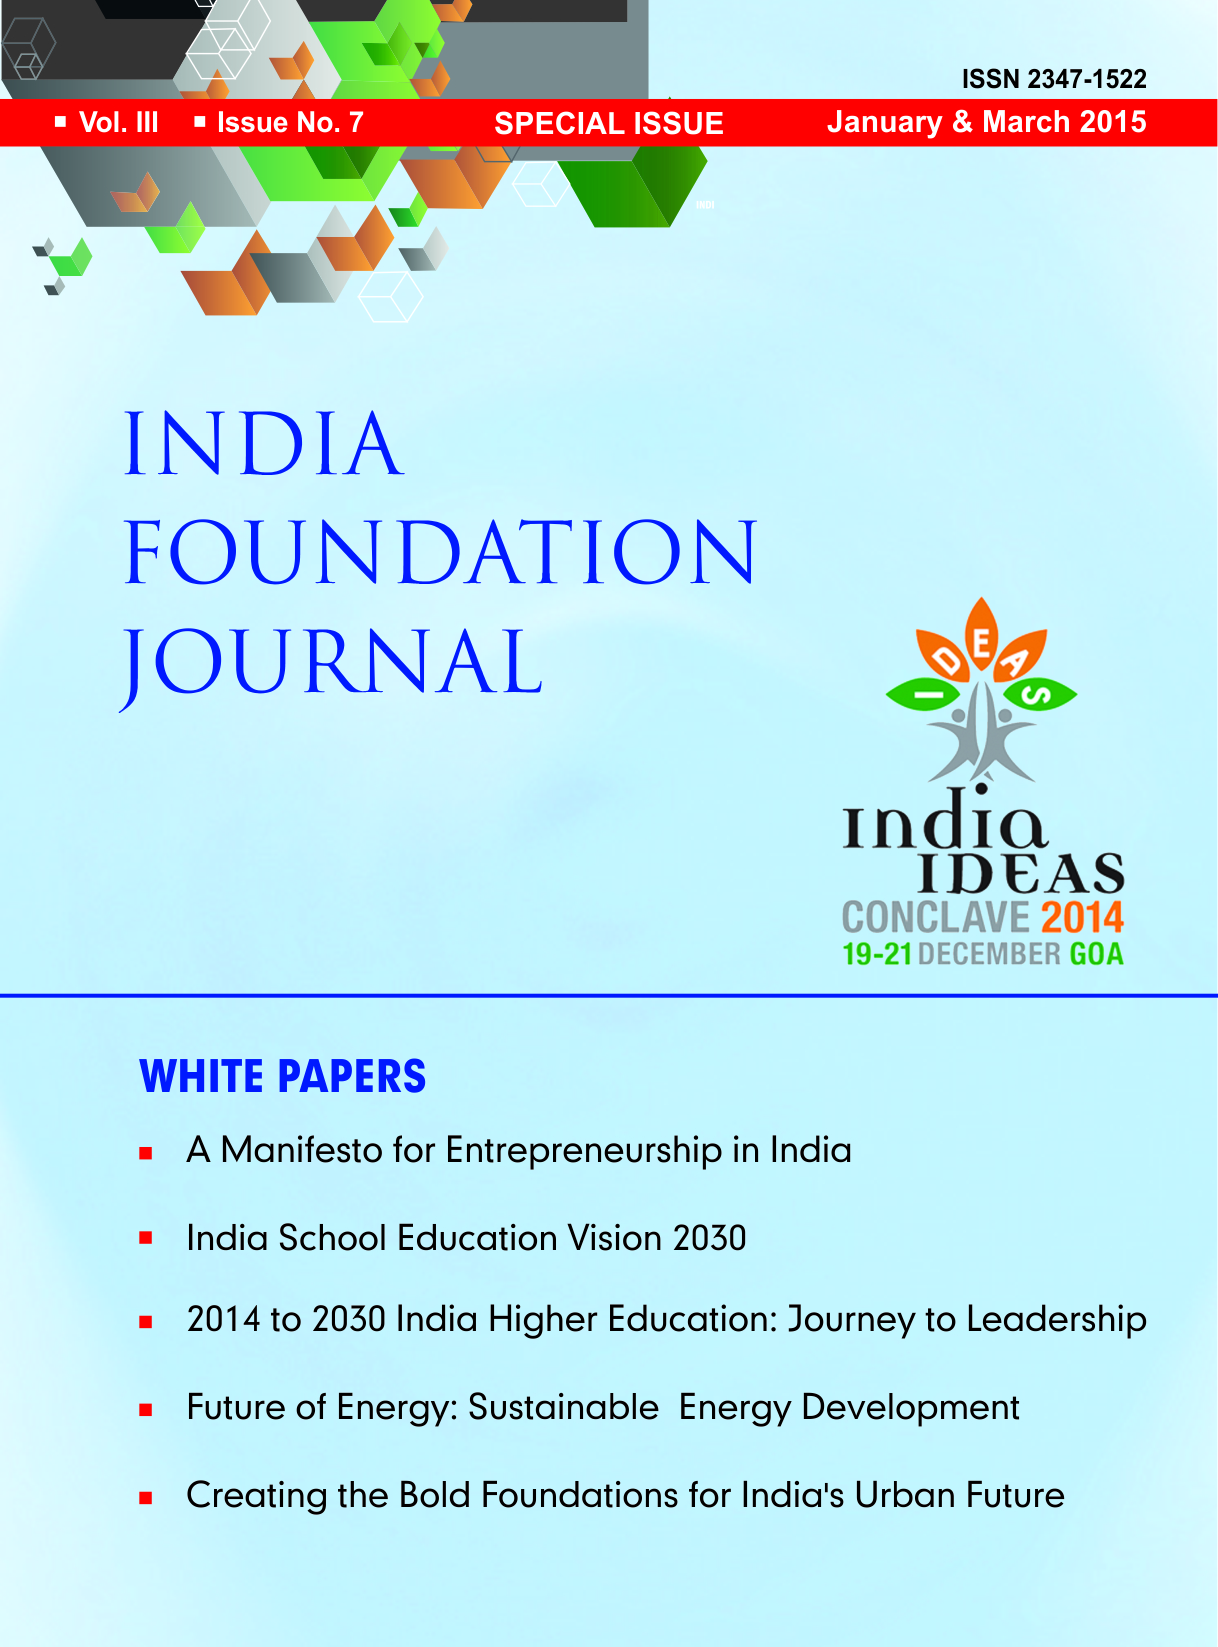 India Foundation Journal – January & March 2015